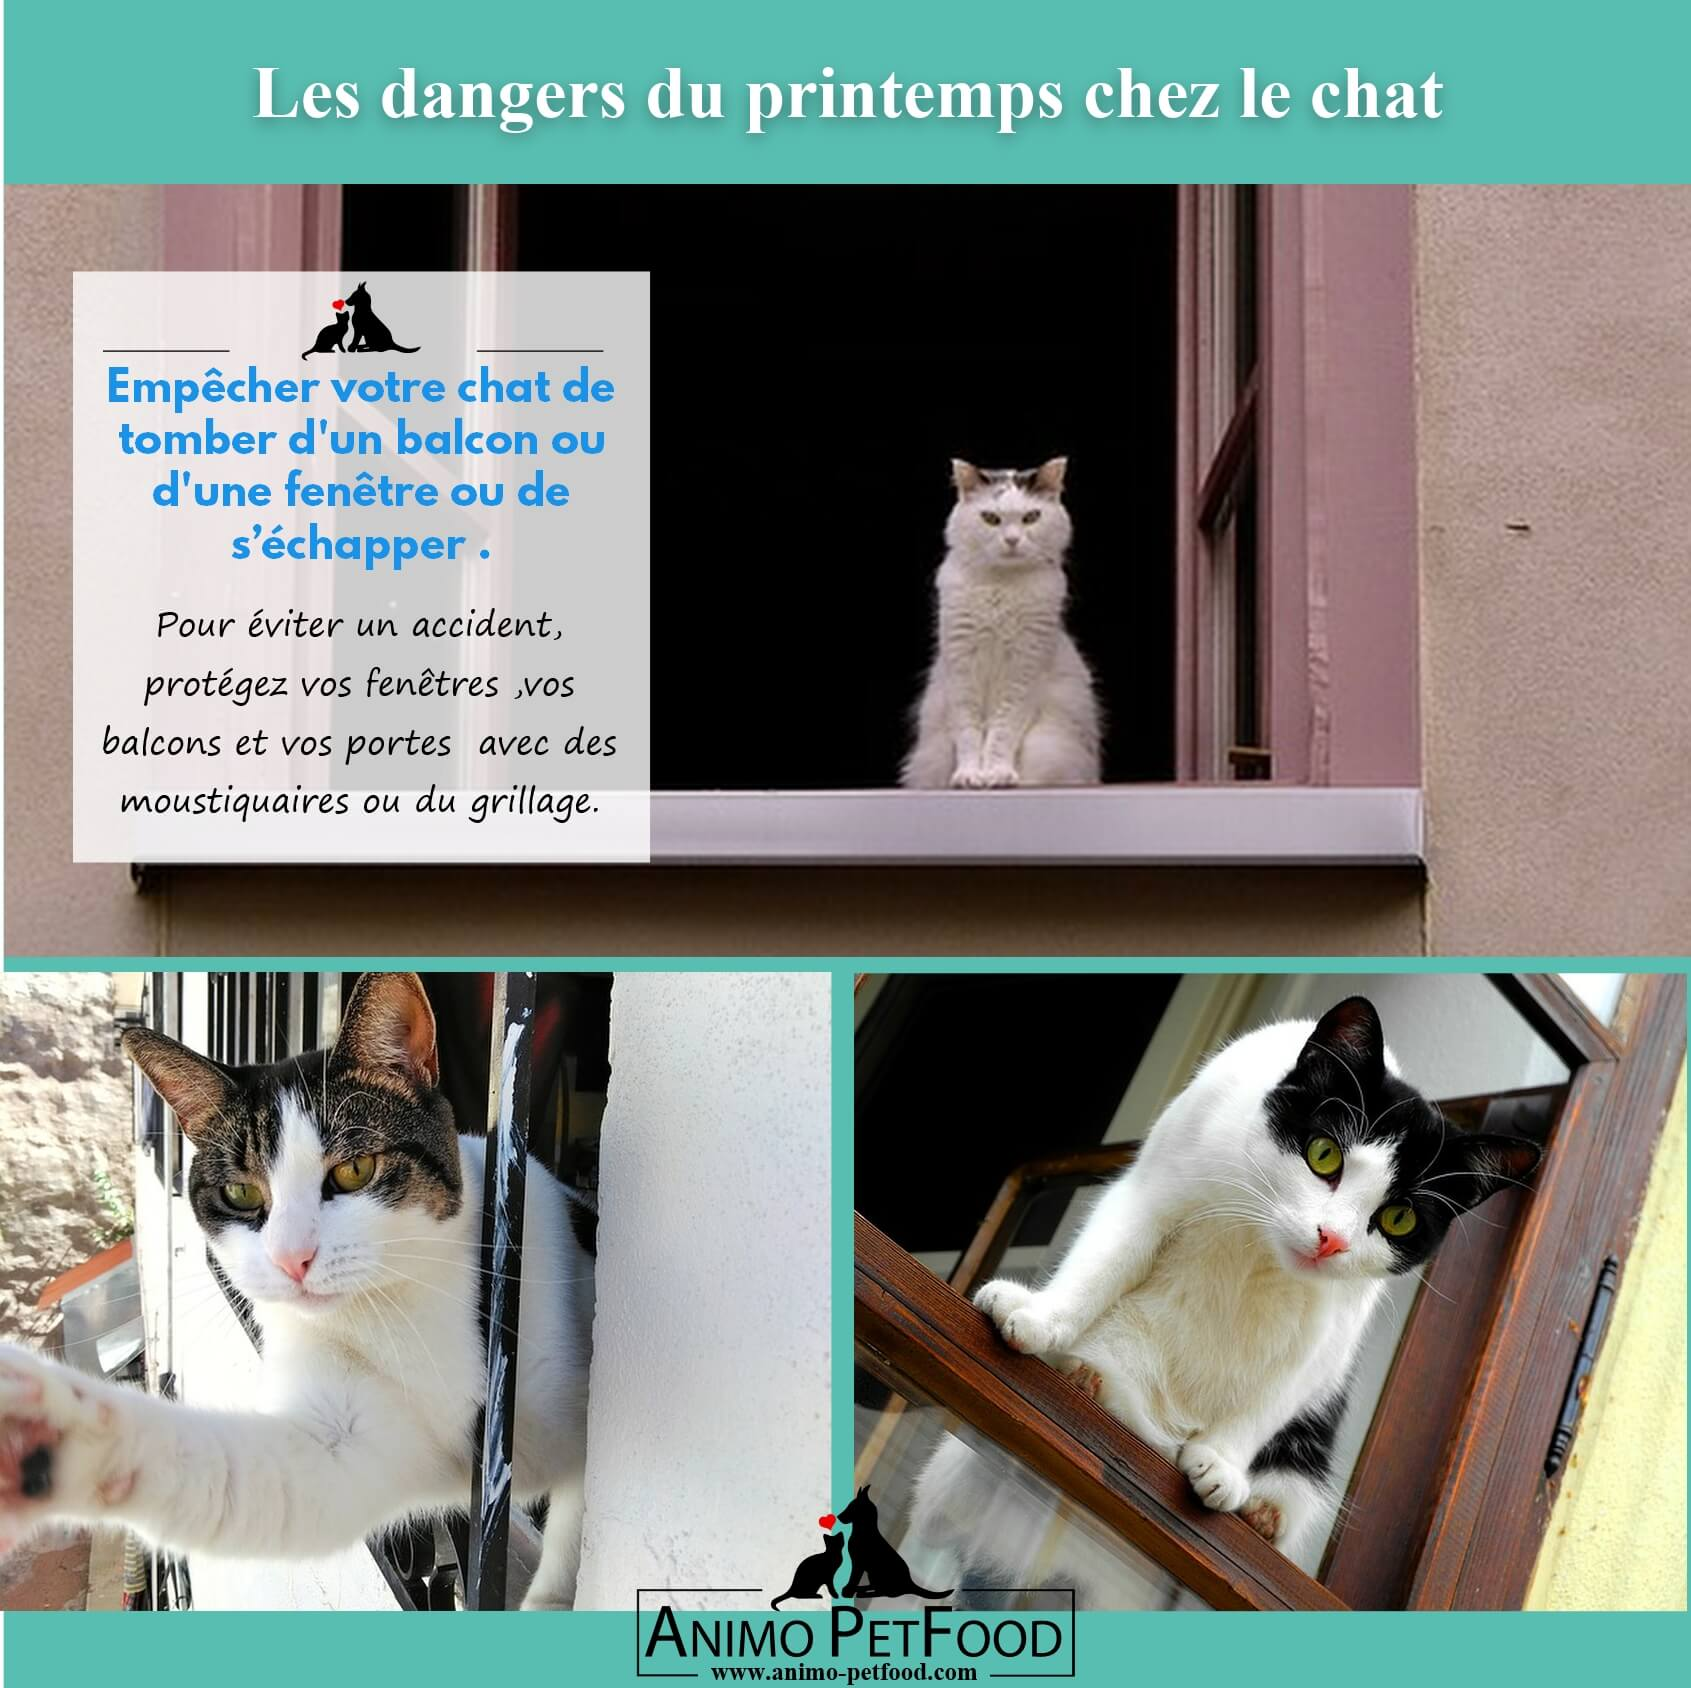 dangers du printemps chez le chat- fractures chat-accident chat